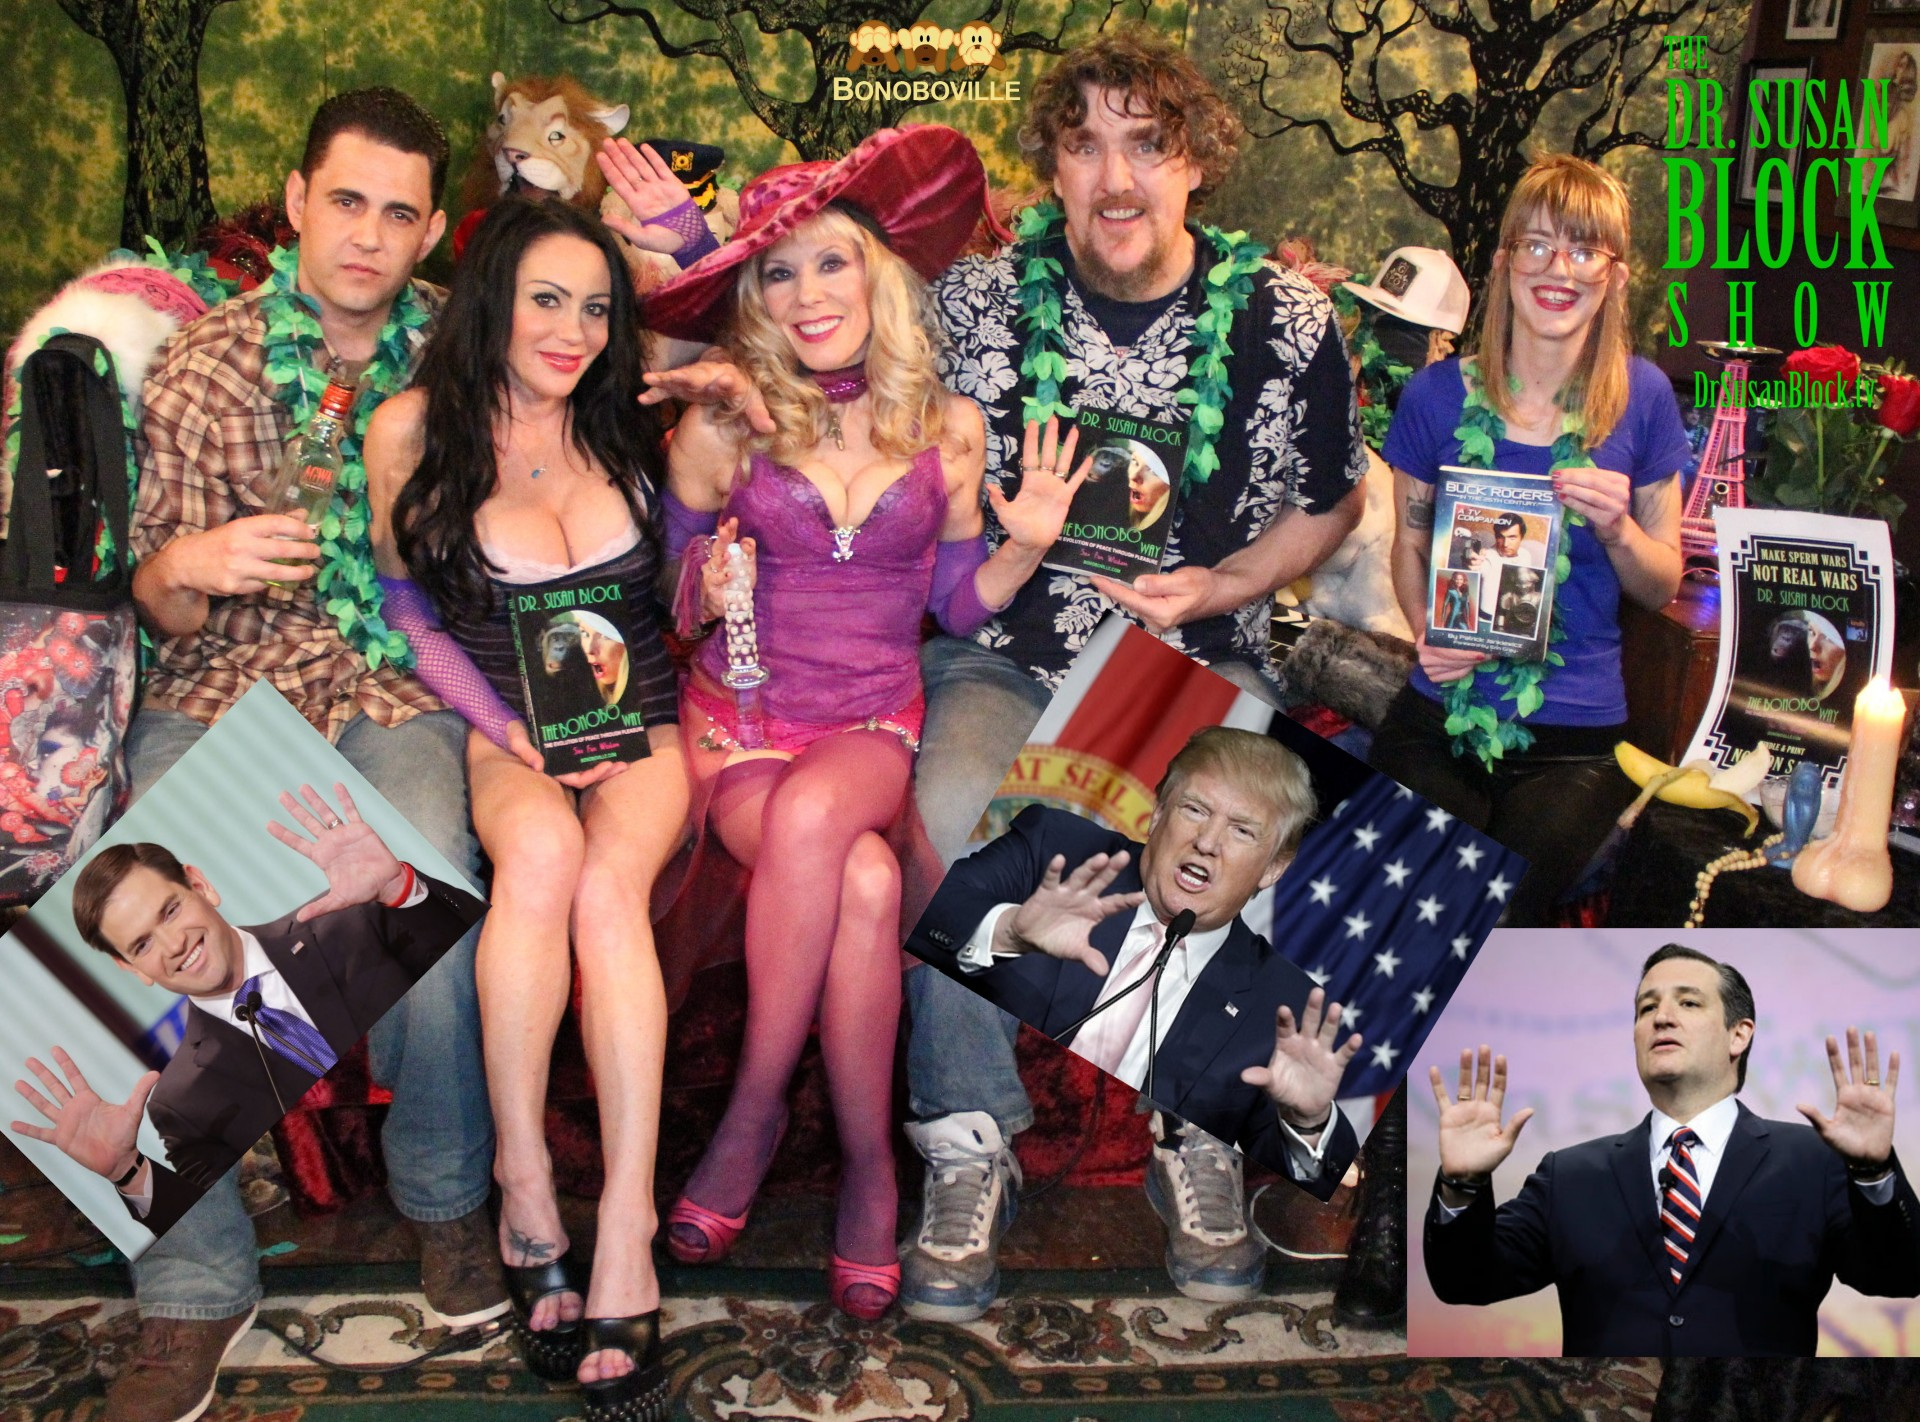 Little Marco, Trumpty Dumphty & Creepy Ted show their hands in Bonoboville (Gonzo, Dayton, Dr. Suzy with Buck Angel glass dildo,, Pat Jankiewicz, Ono Bo. Photo: Cavie